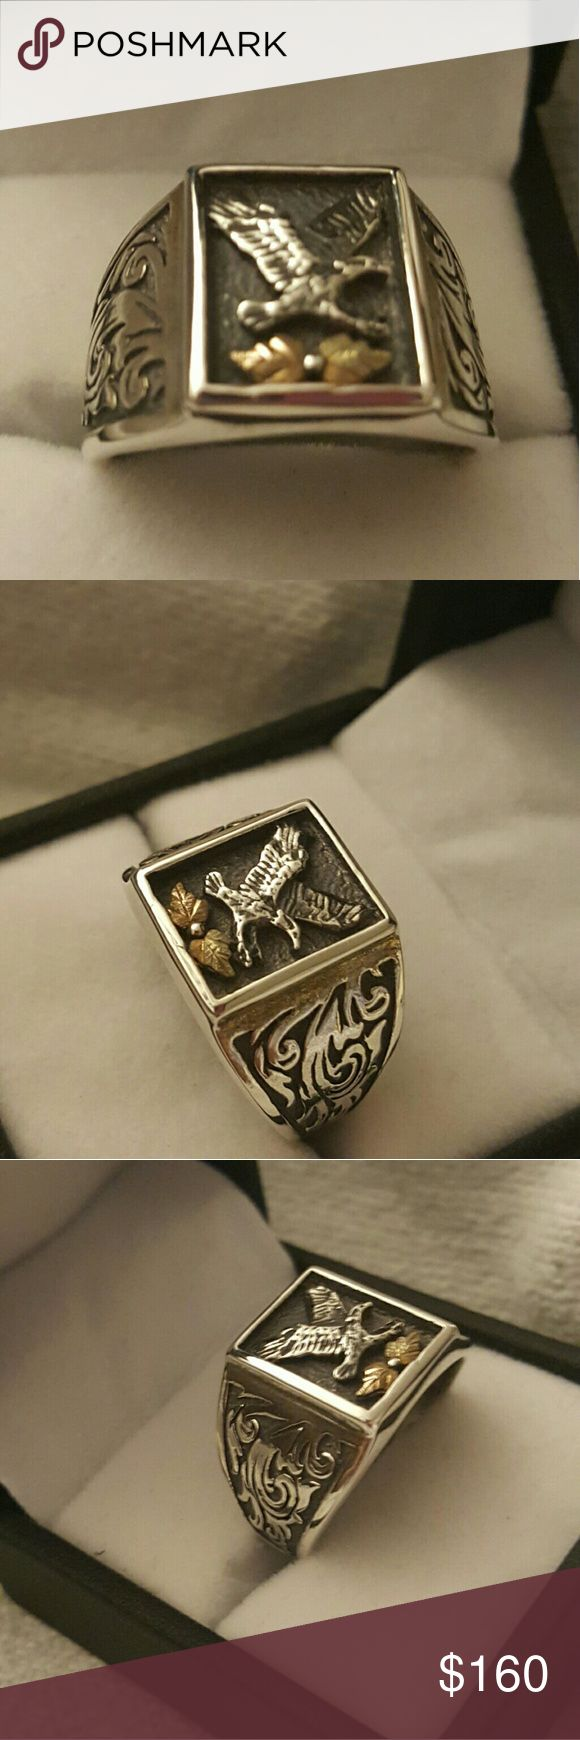 BLACK HILLS GOLD MENS RING BLACK HILLS GOLD / ONIX  12K STERLING SILVER  MENS RING SZ 11 IN GOOD CONDITION BOUGHT AT KAY JEWELRY  COMES IN A GIFT BOX Black hills gold kay jewelry Accessories Jewelry